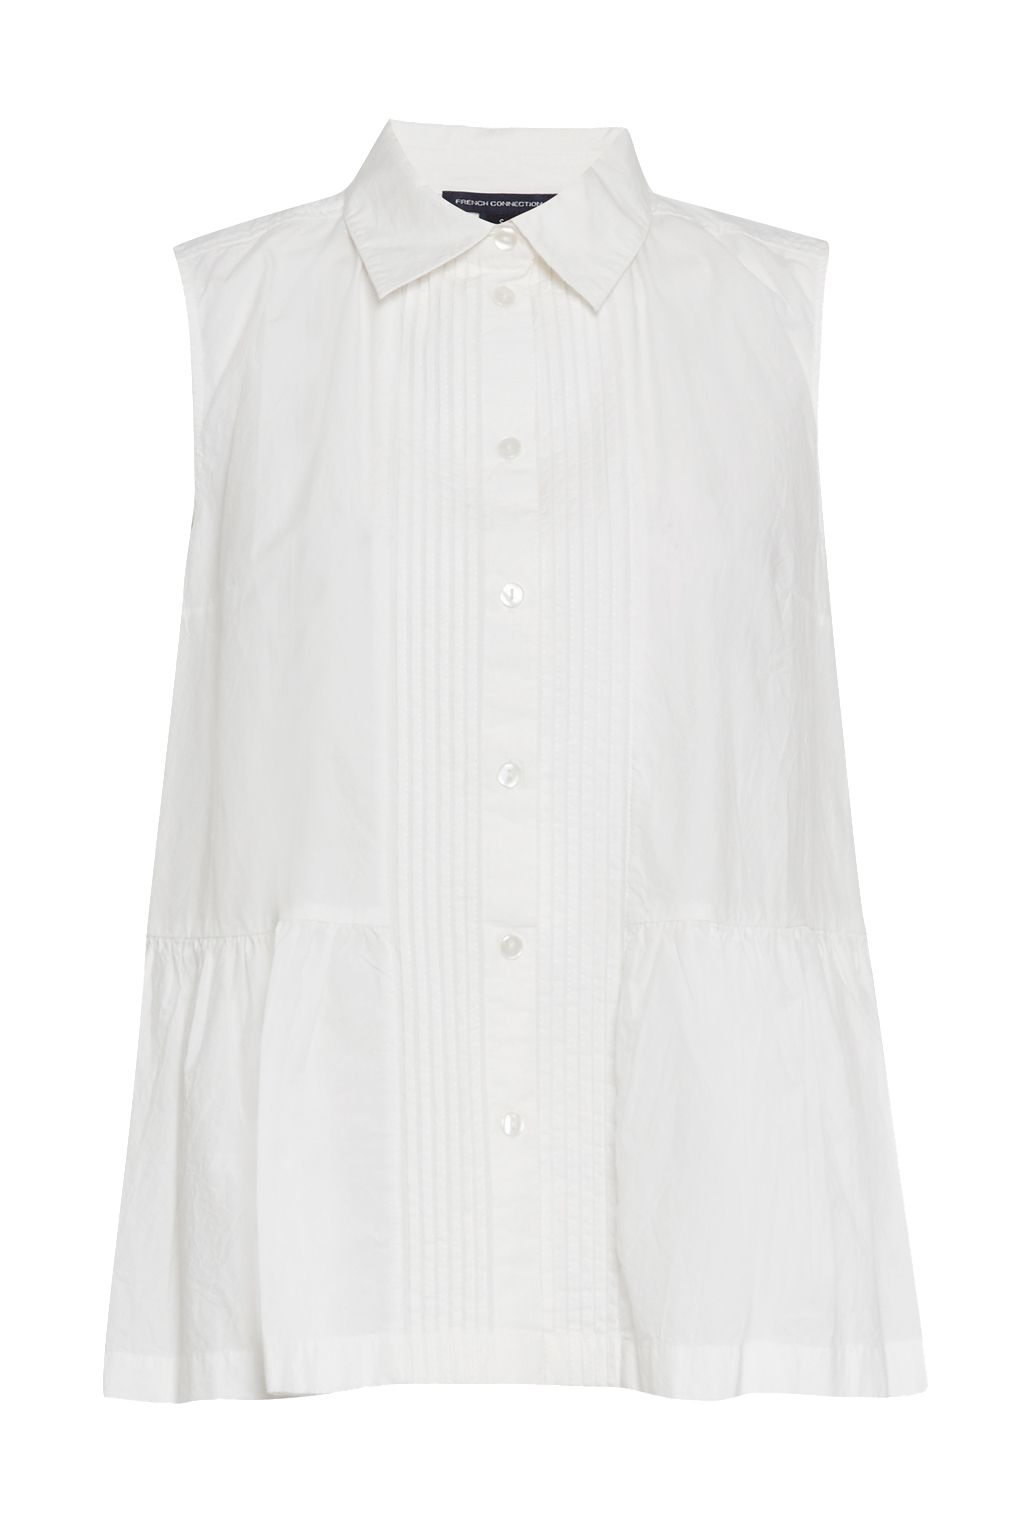 French Connection Neema Cotton Pintuck Shirt, White